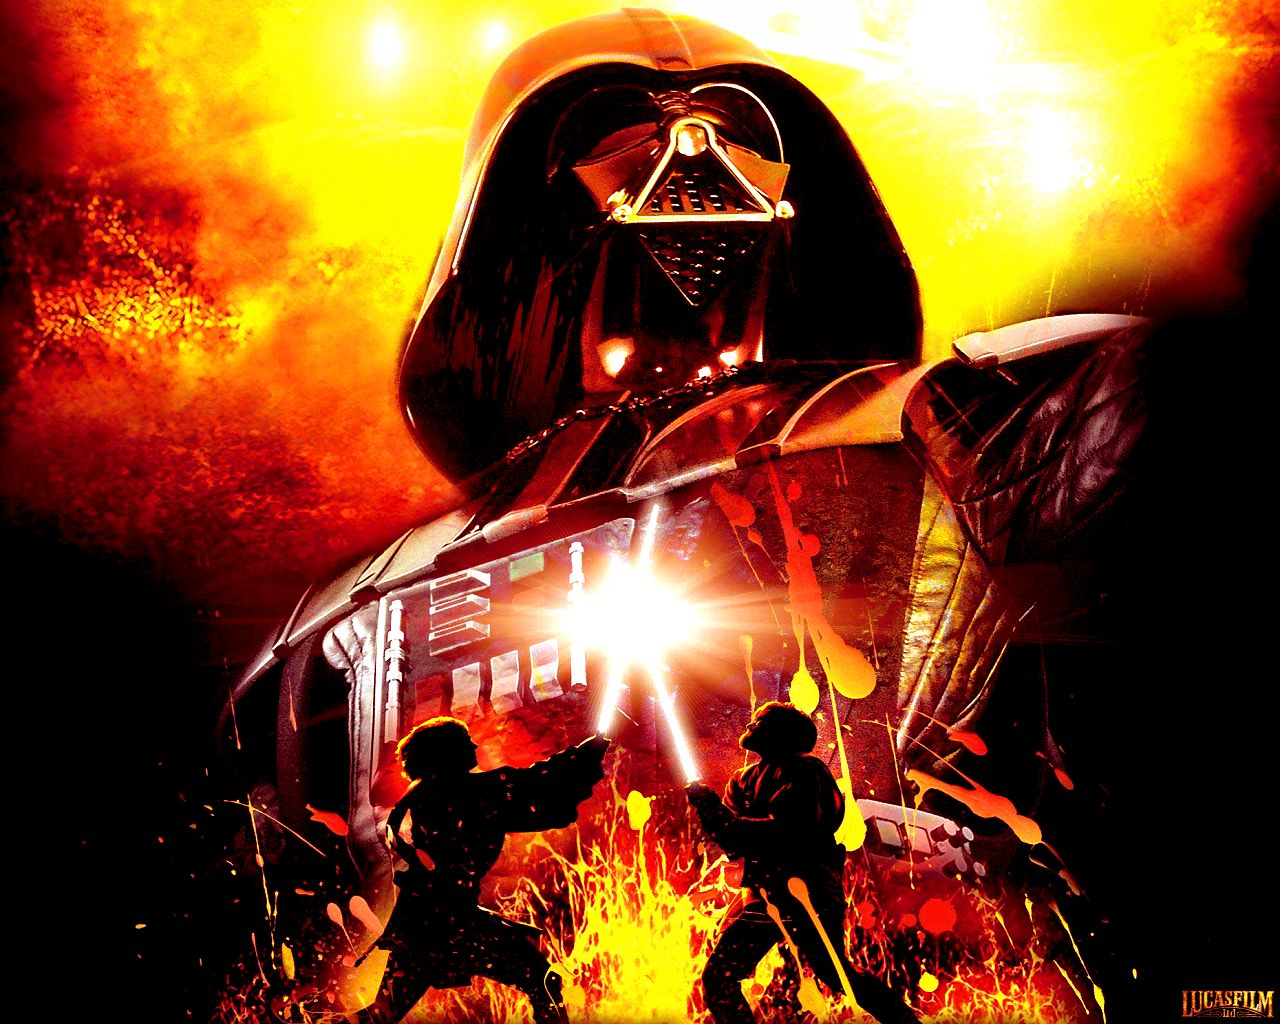 Fi Star Wars Revenge Of The Sith